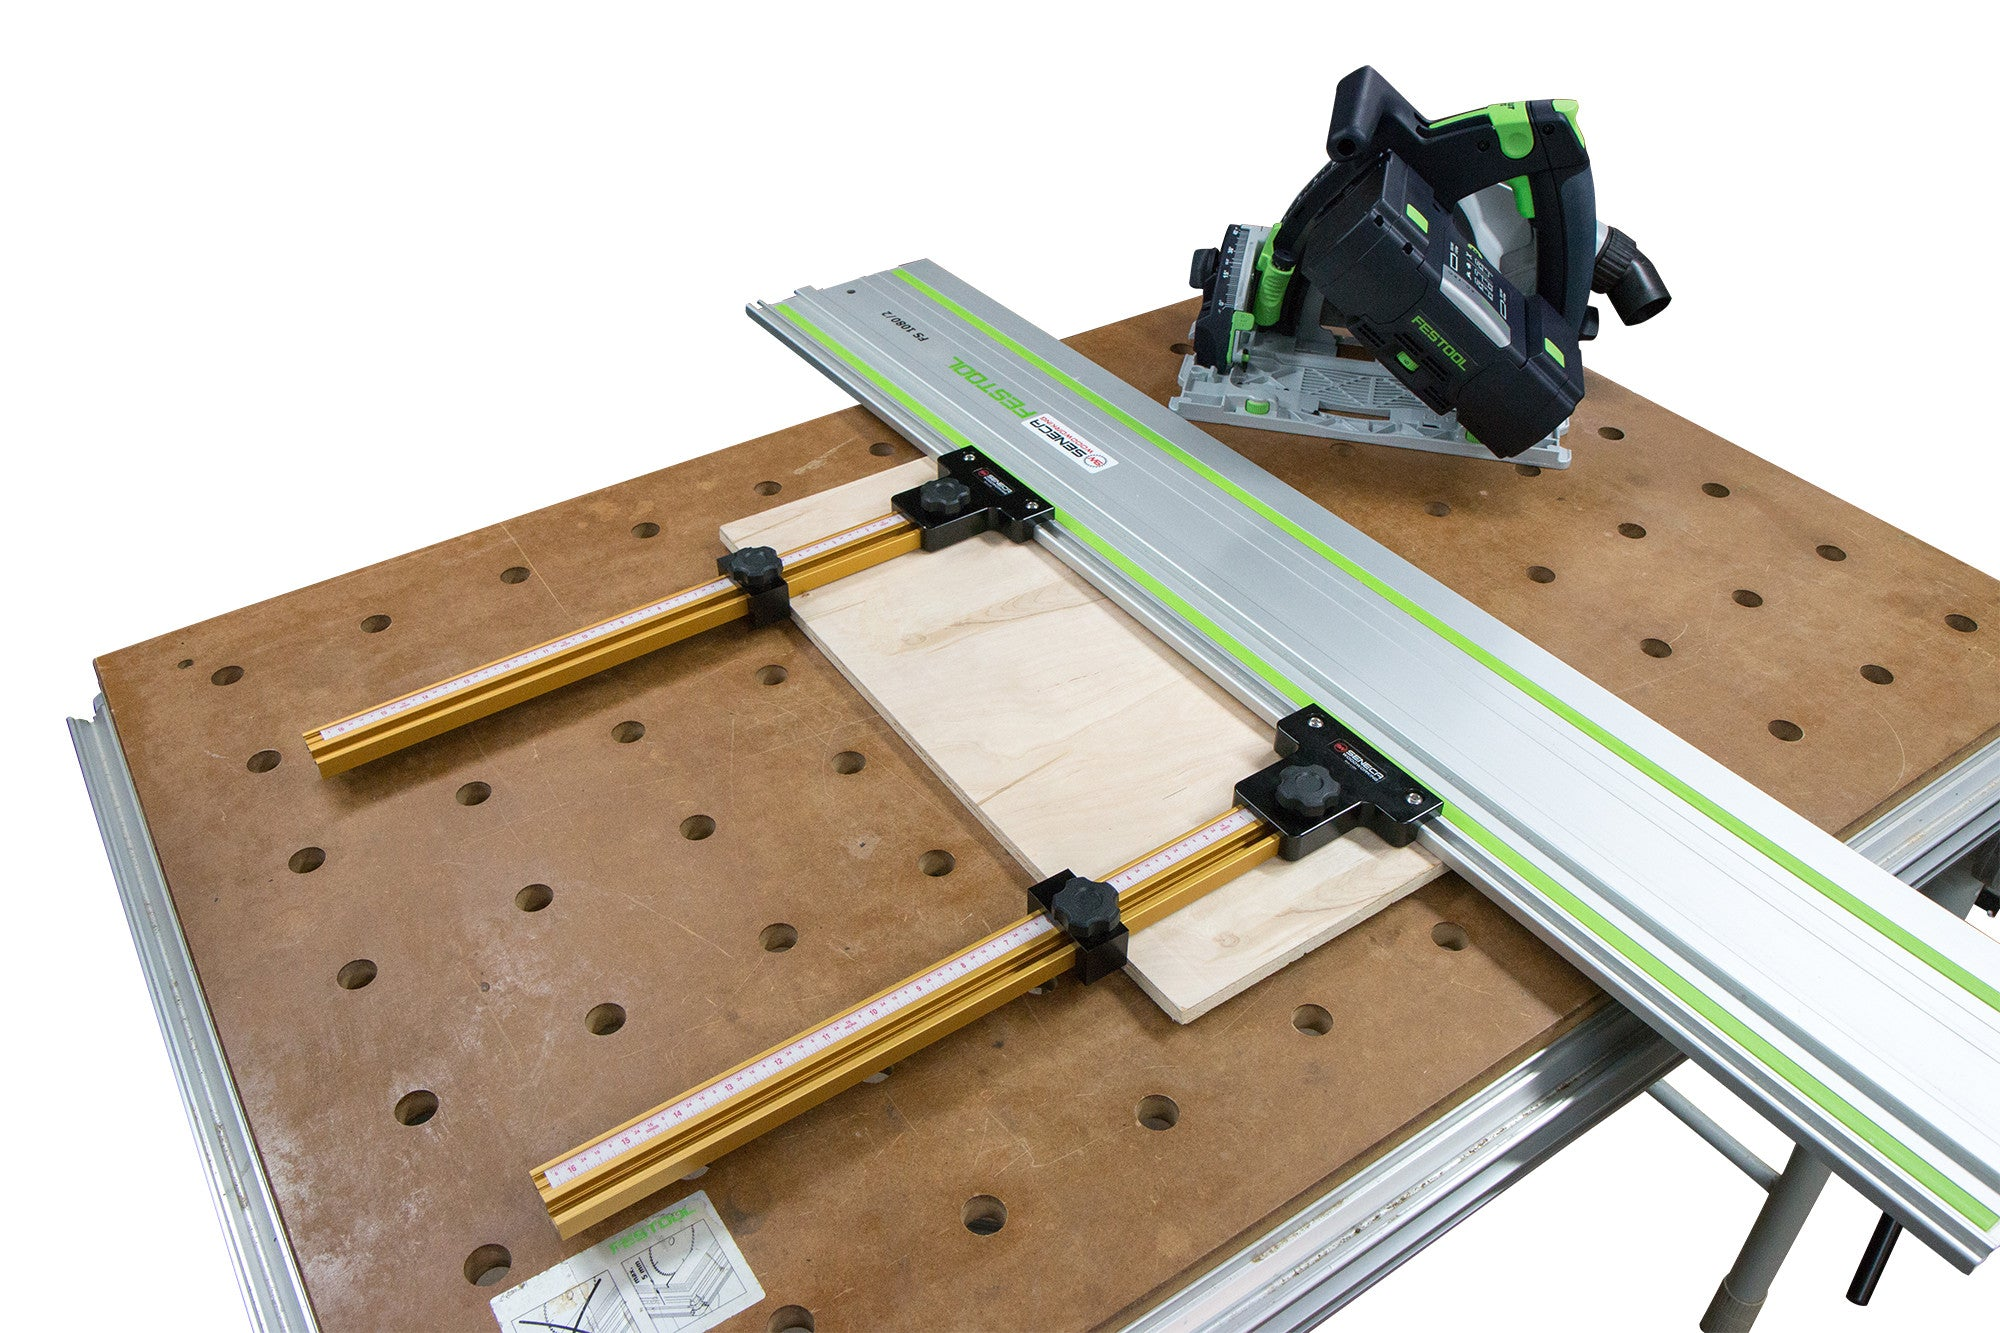 Parallel Guide System for Festool and Makita Track Saw Guide Rail